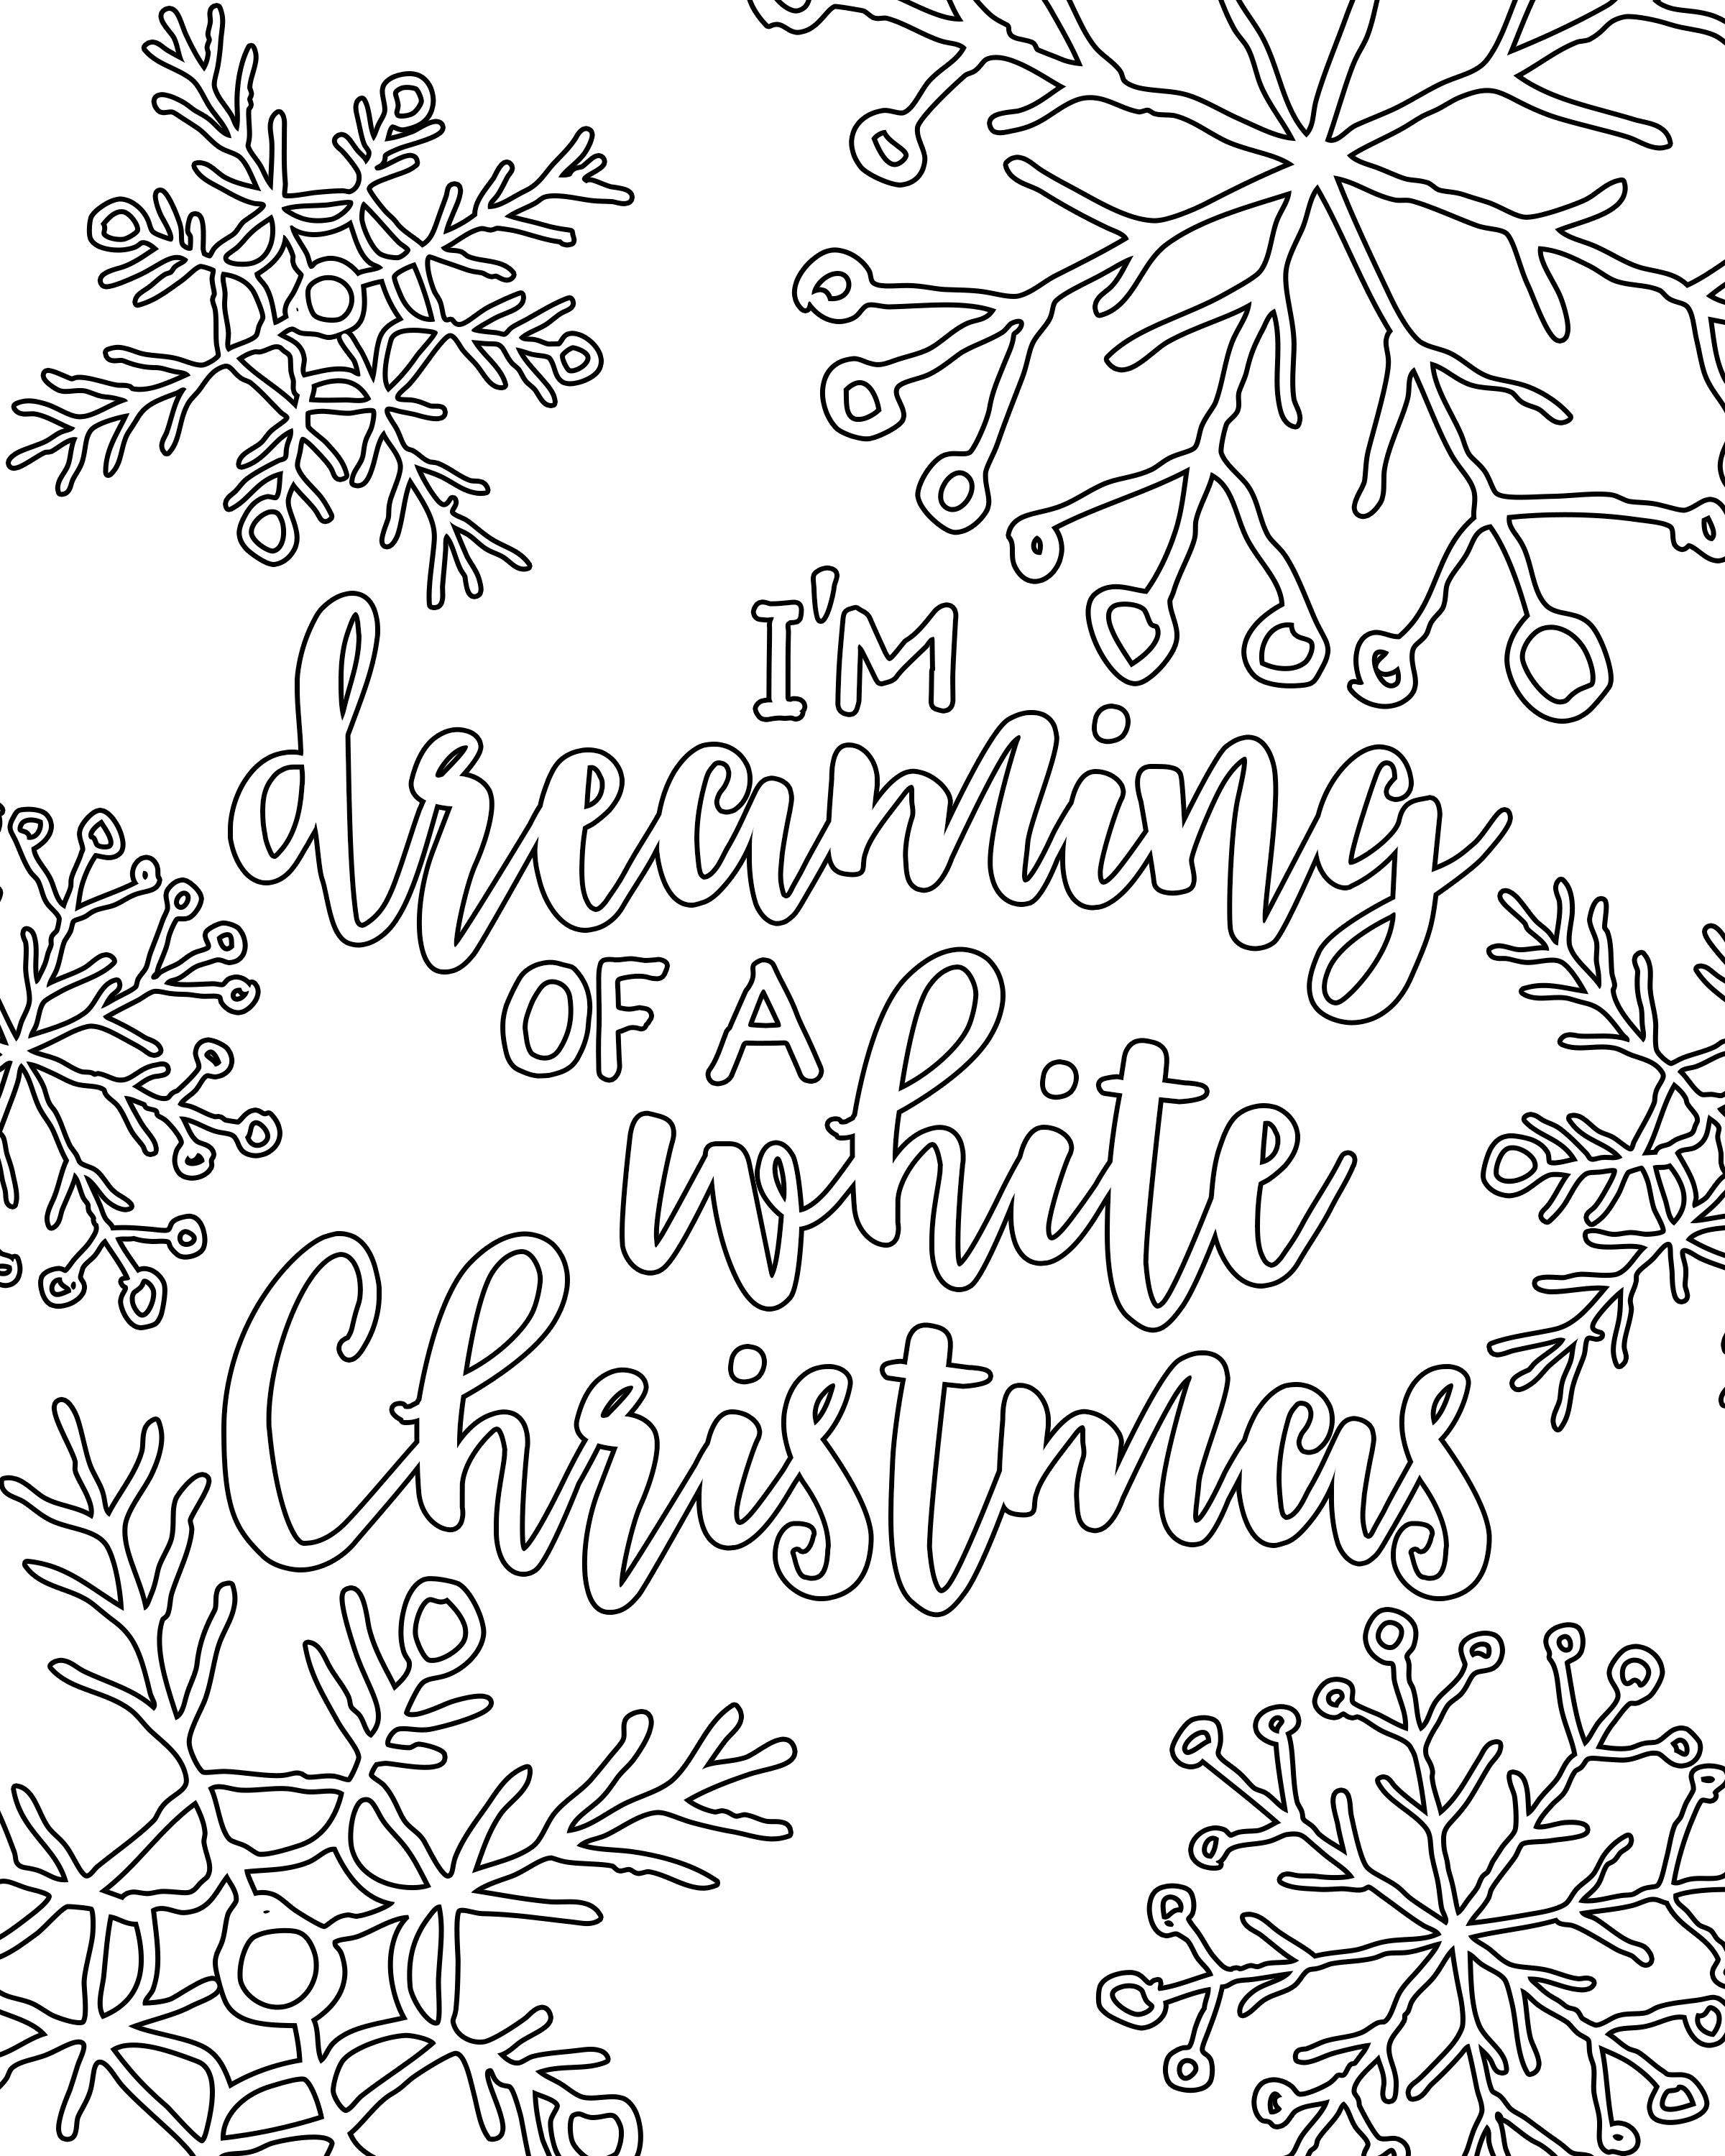 Christmas Coloring Websites With Free Printable White Adult Pages Our